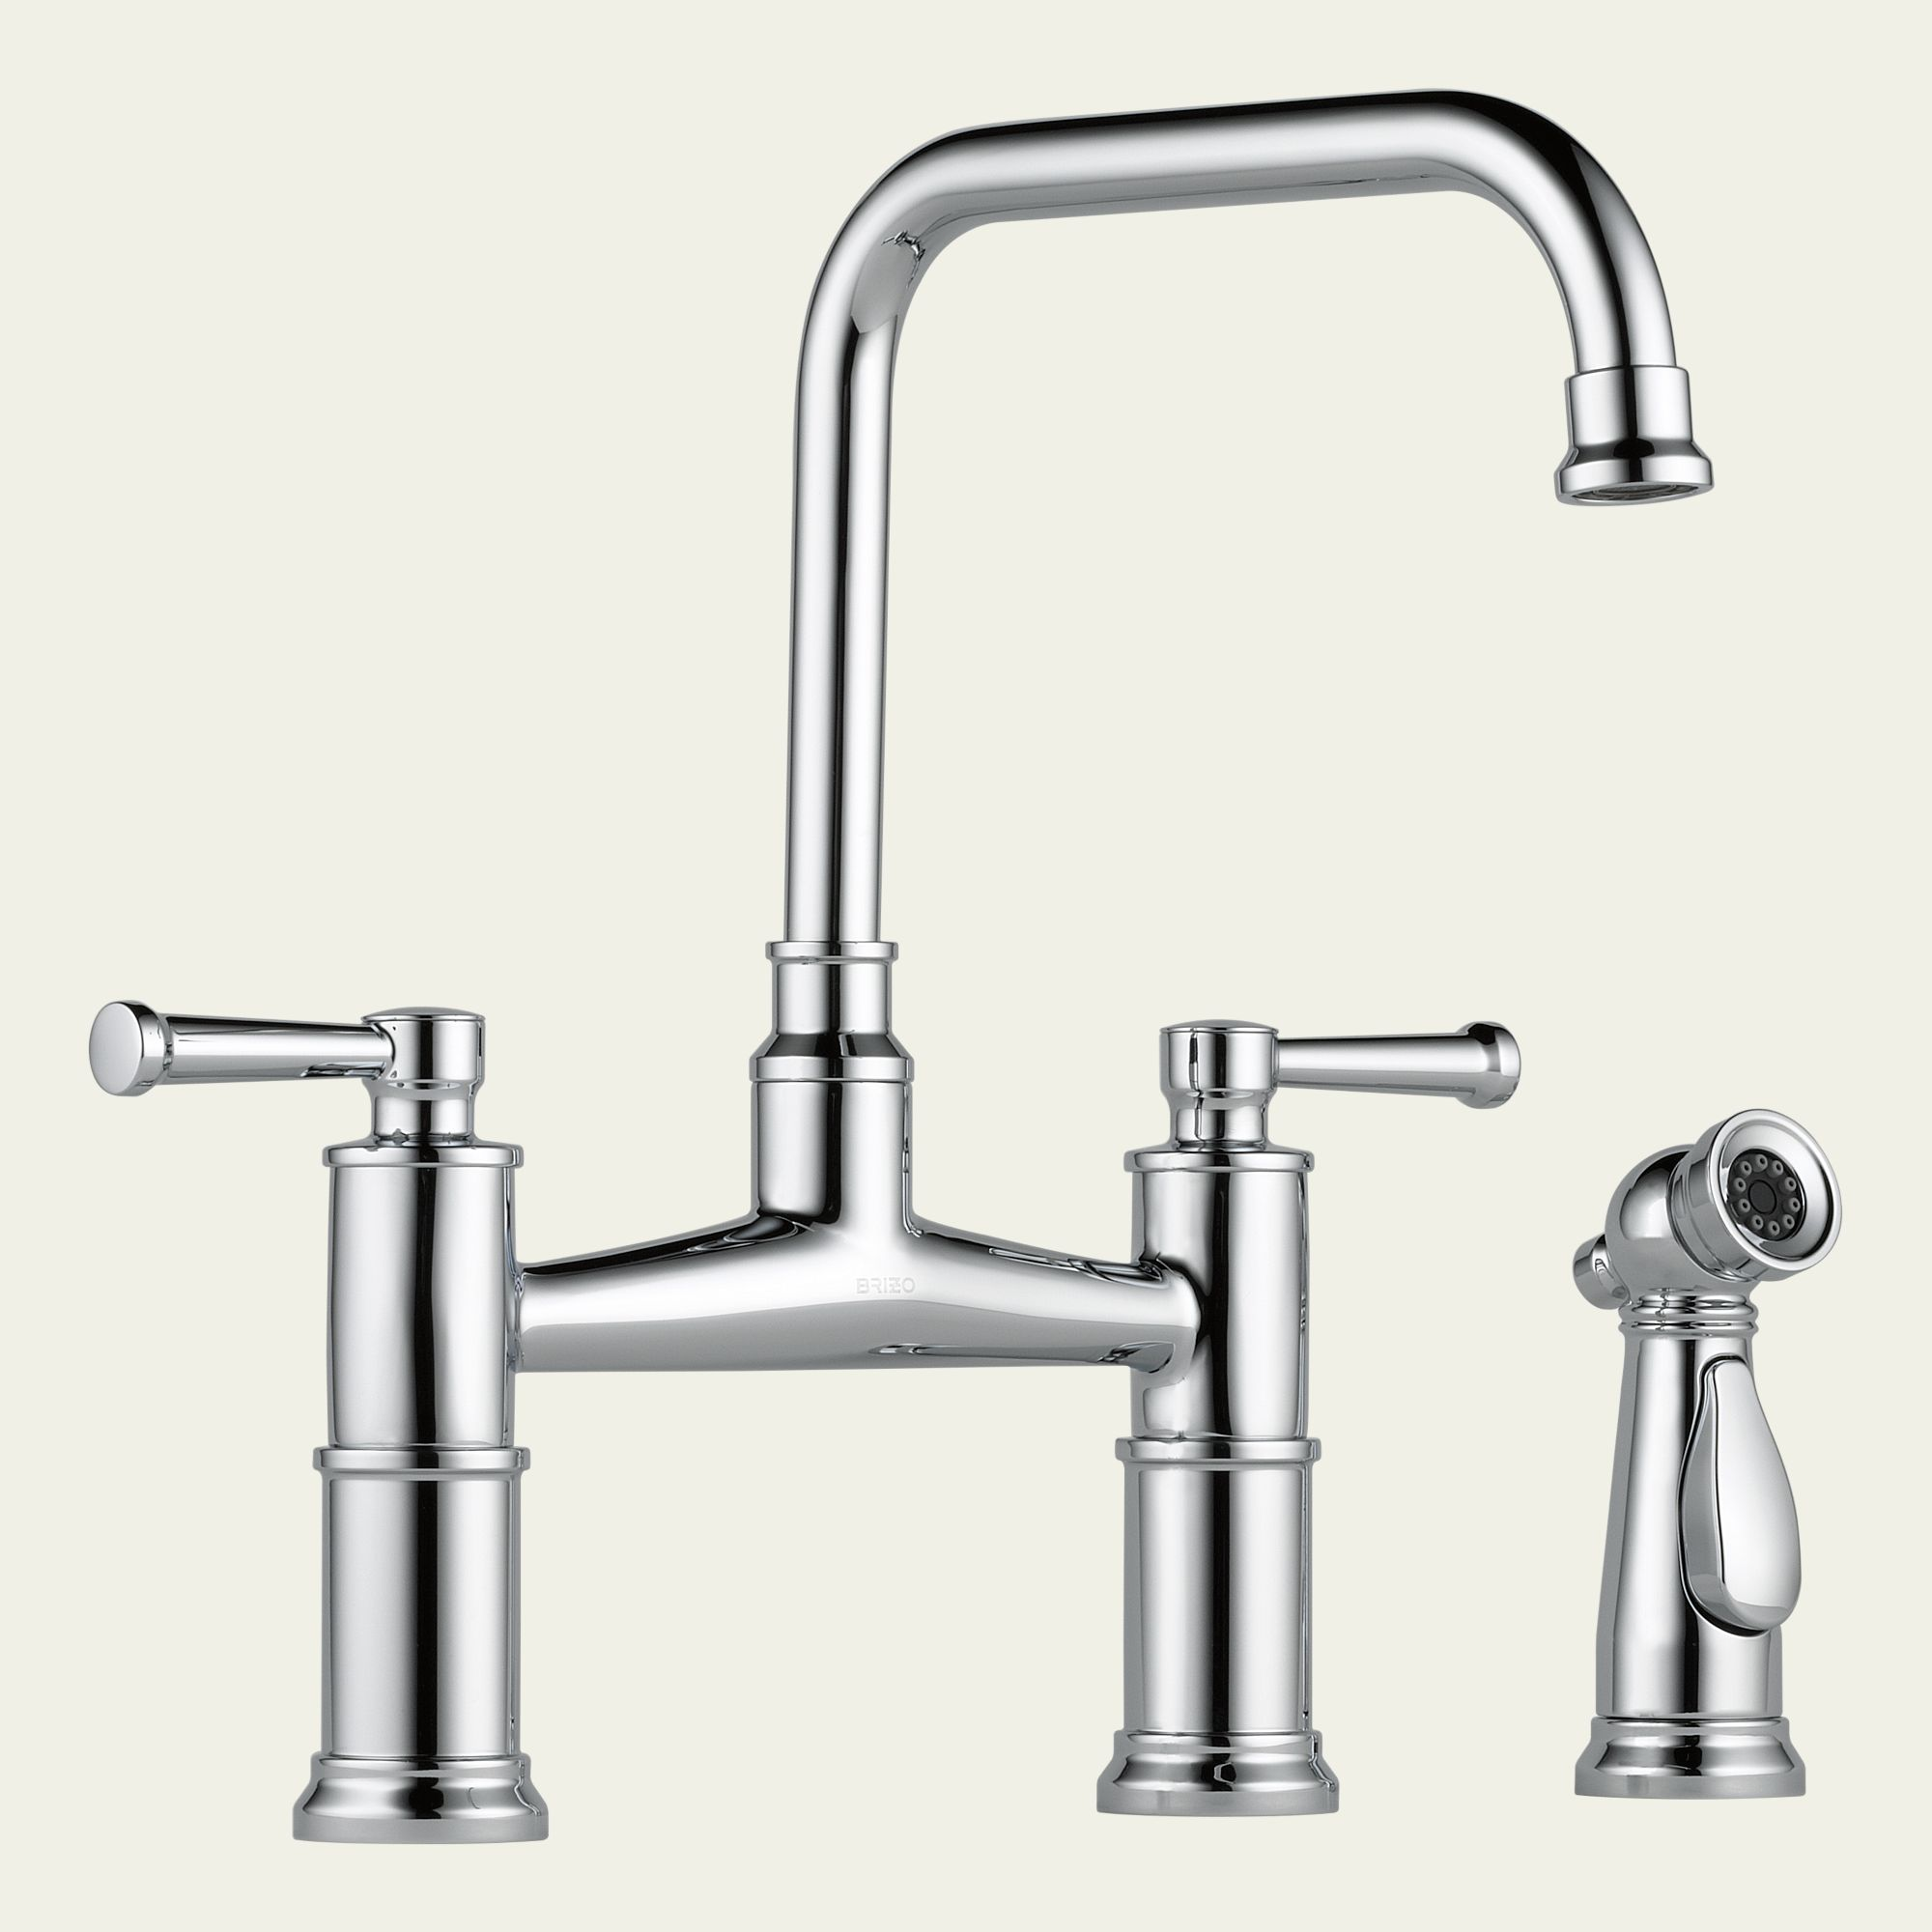 LF Brizo Two Handle Bridge Kitchen Faucet with Spray